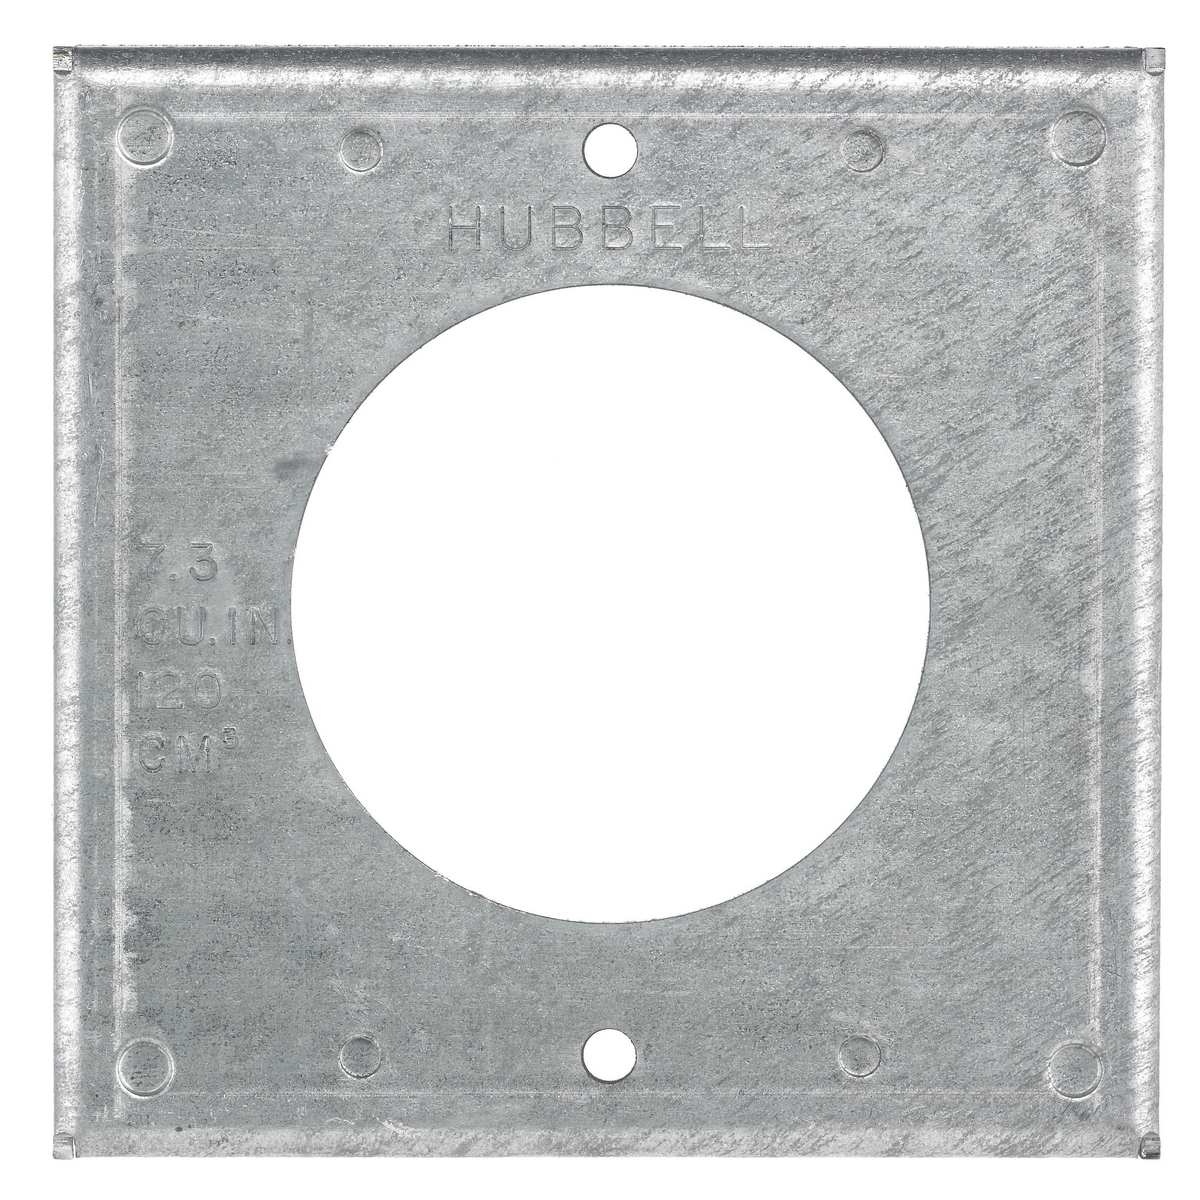 Hubbell HBL50SC 4 Inch Square 50 Amp Locking Opening Box Cover